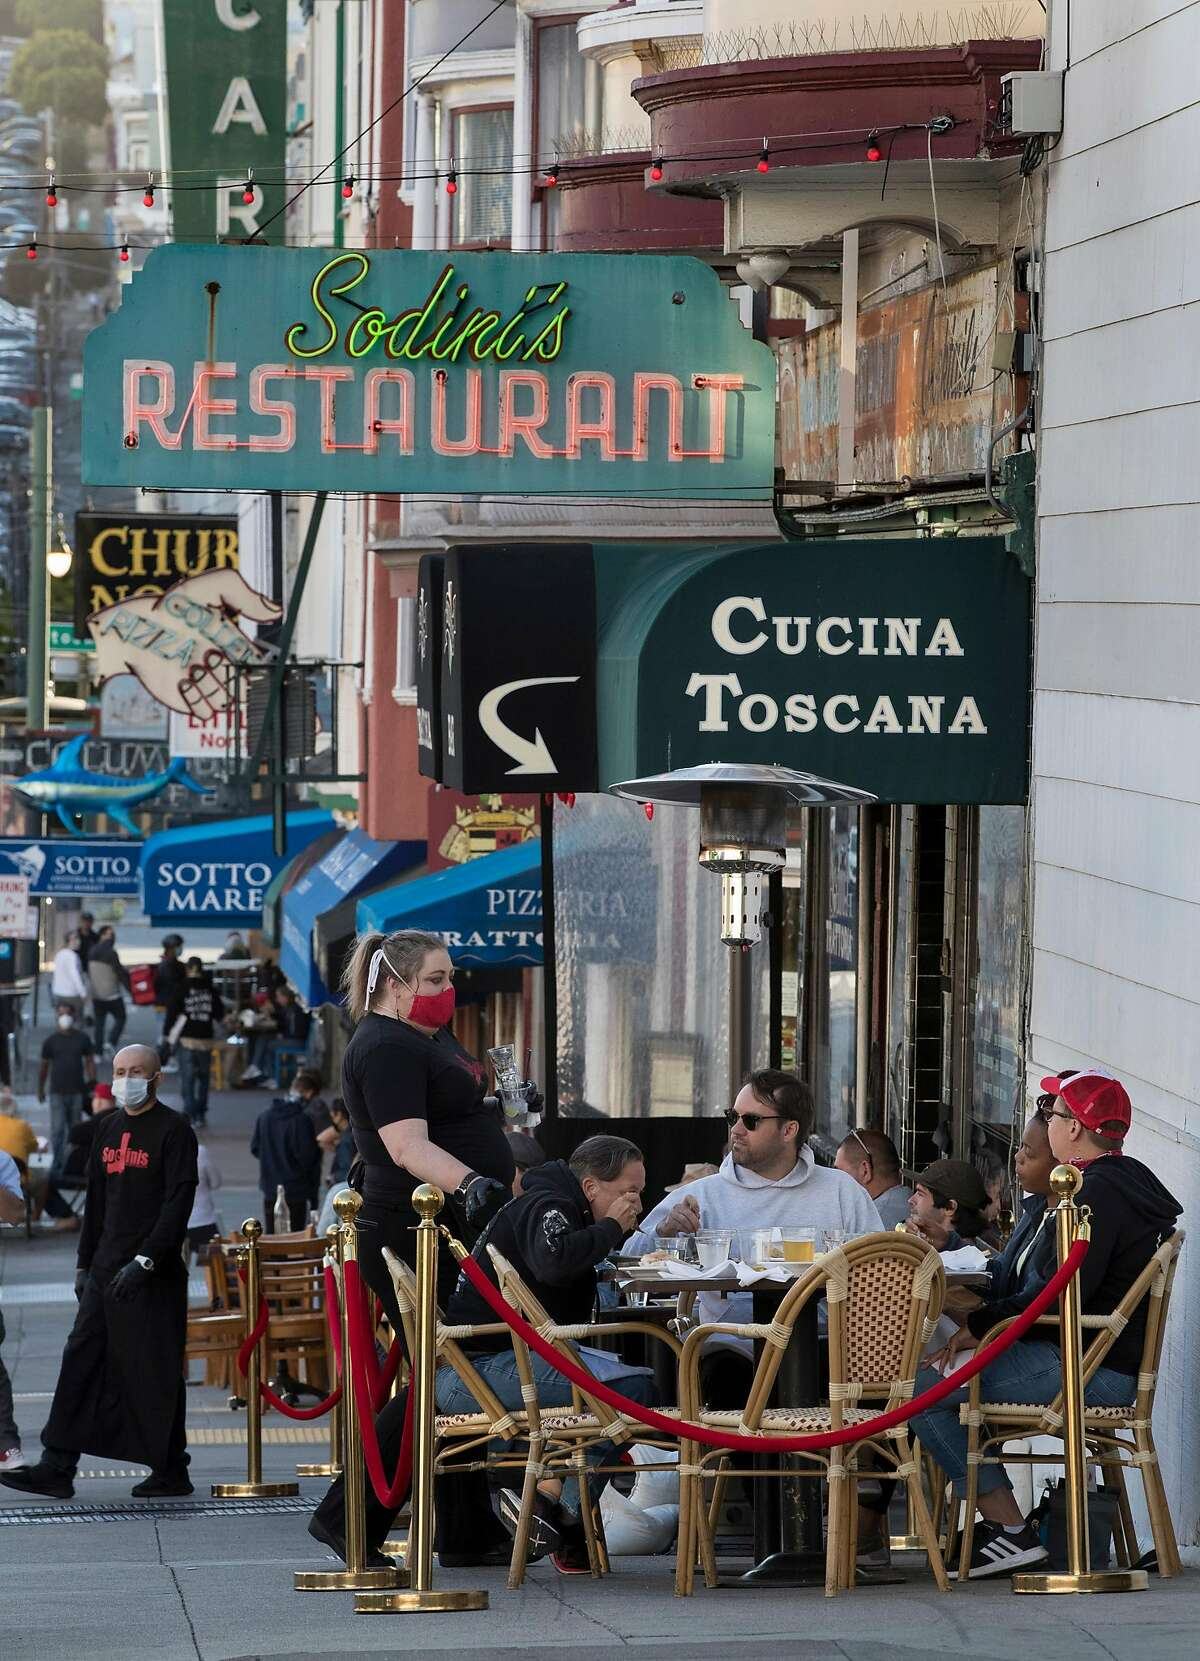 Diners at Sodini's Green Valley Restaurant are taken care of at their outdoor tables by waitstaff in San Francisco, Calif., on Tuesday, June 16, 2020. The transitional post-shelter in place phase of landscape of San Francisco dining establishments is starting. Eateries try to stir back into action, but with a burden of constraints of protecting their customers. Several places on Belden Place are coming back with spaced outdoor tables, and several places on Green Street between Grant and Columbus are testing the waters as well with new dining in the street.